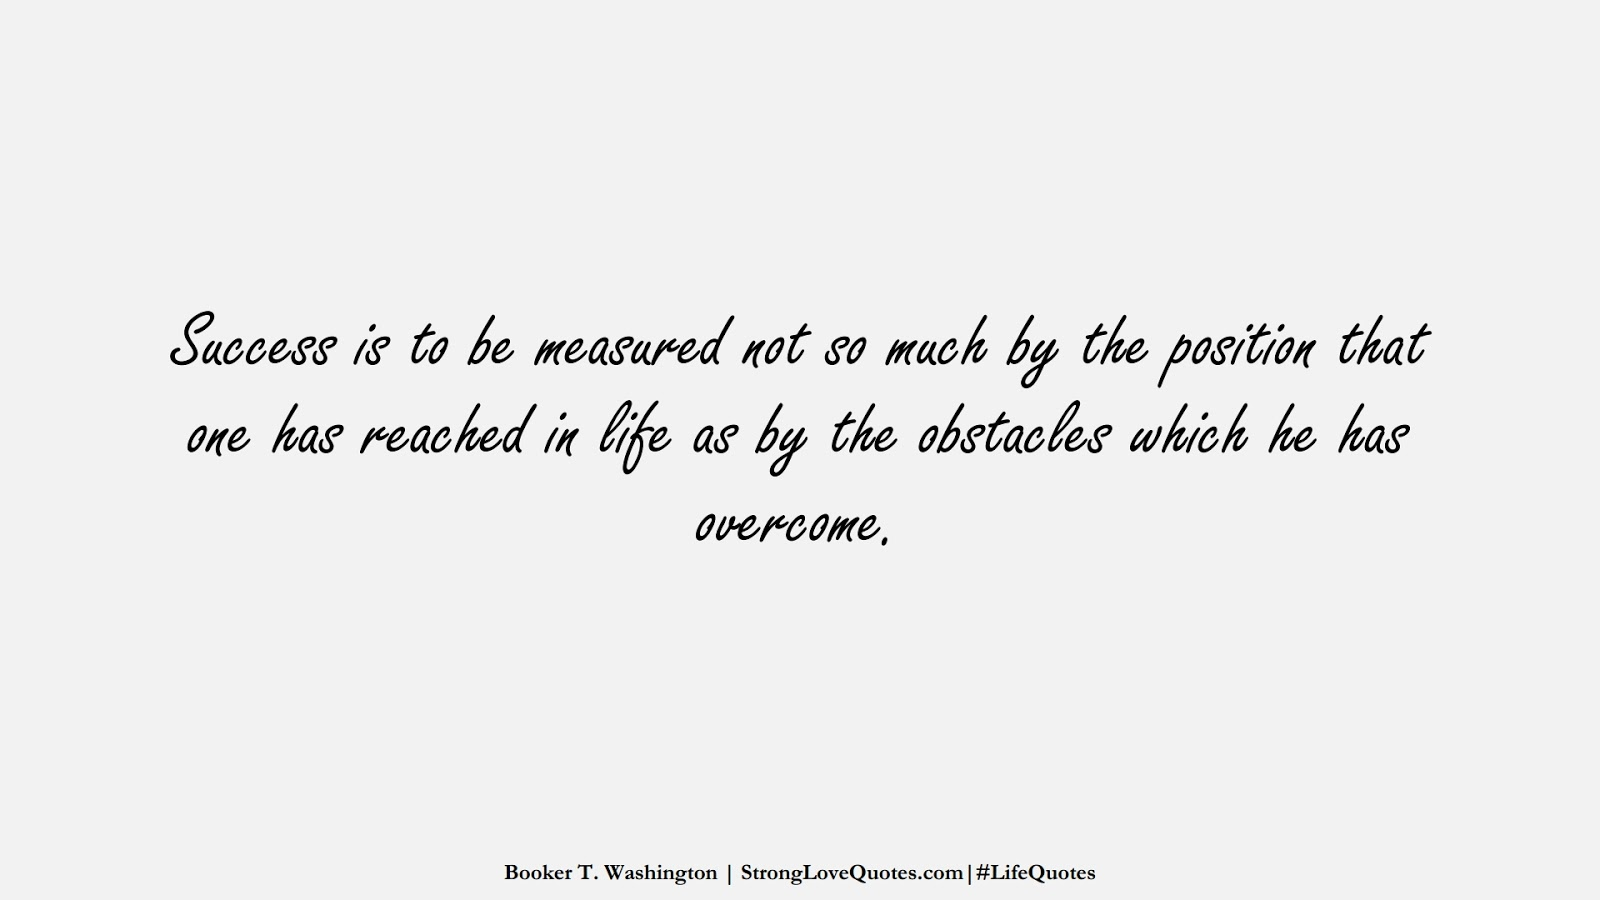 Success is to be measured not so much by the position that one has reached in life as by the obstacles which he has overcome. (Booker T. Washington);  #LifeQuotes